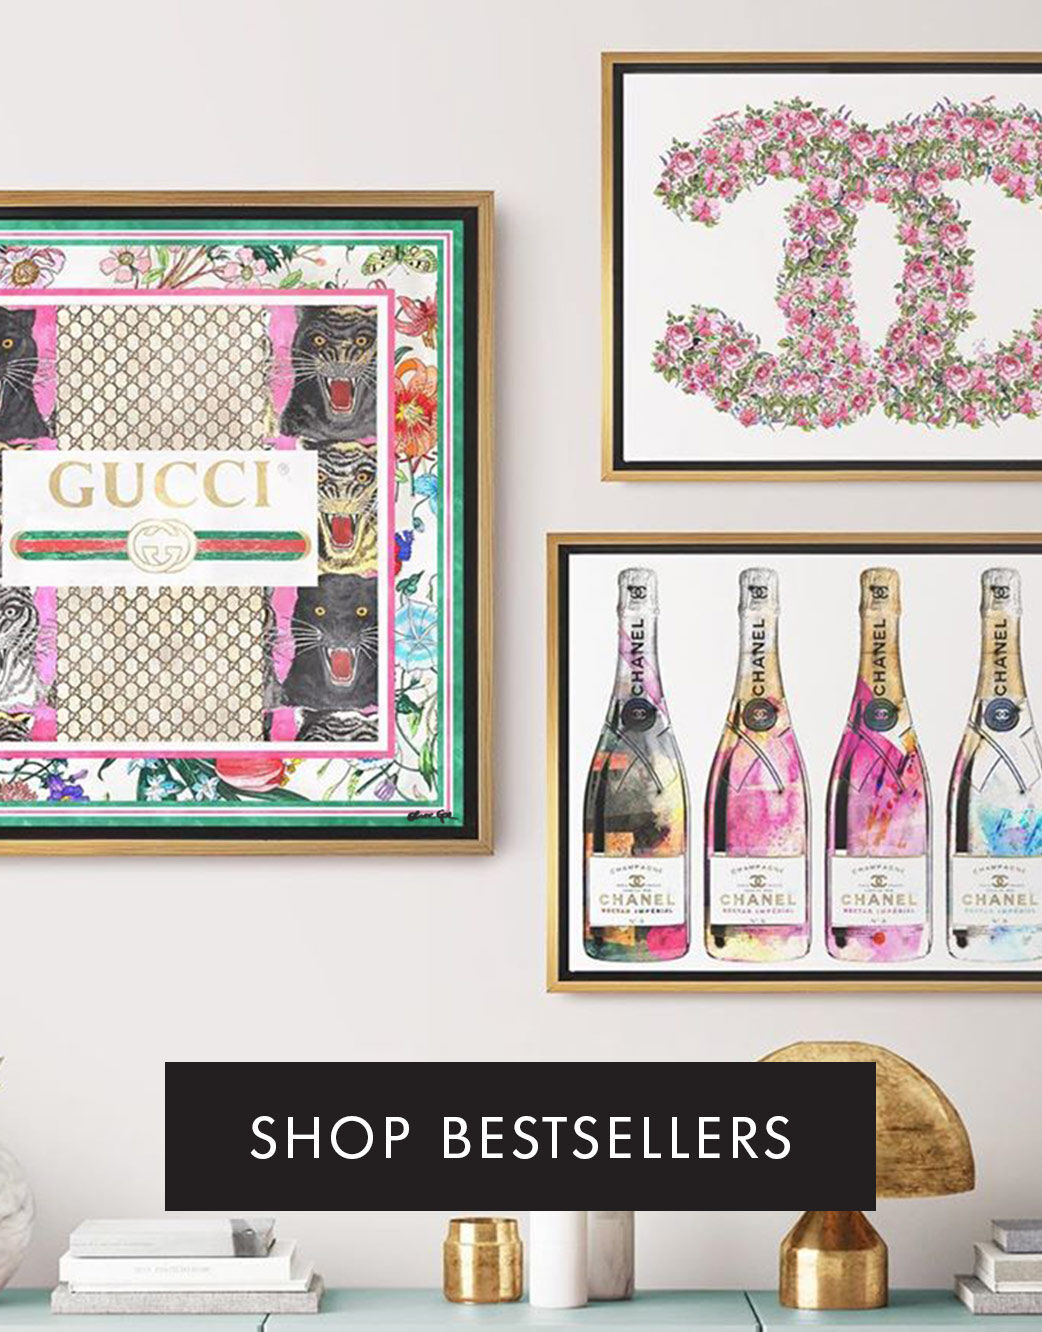 Bestselling Canvas Wall Art - Fashion, Champagne, Florals, Gallery Walls